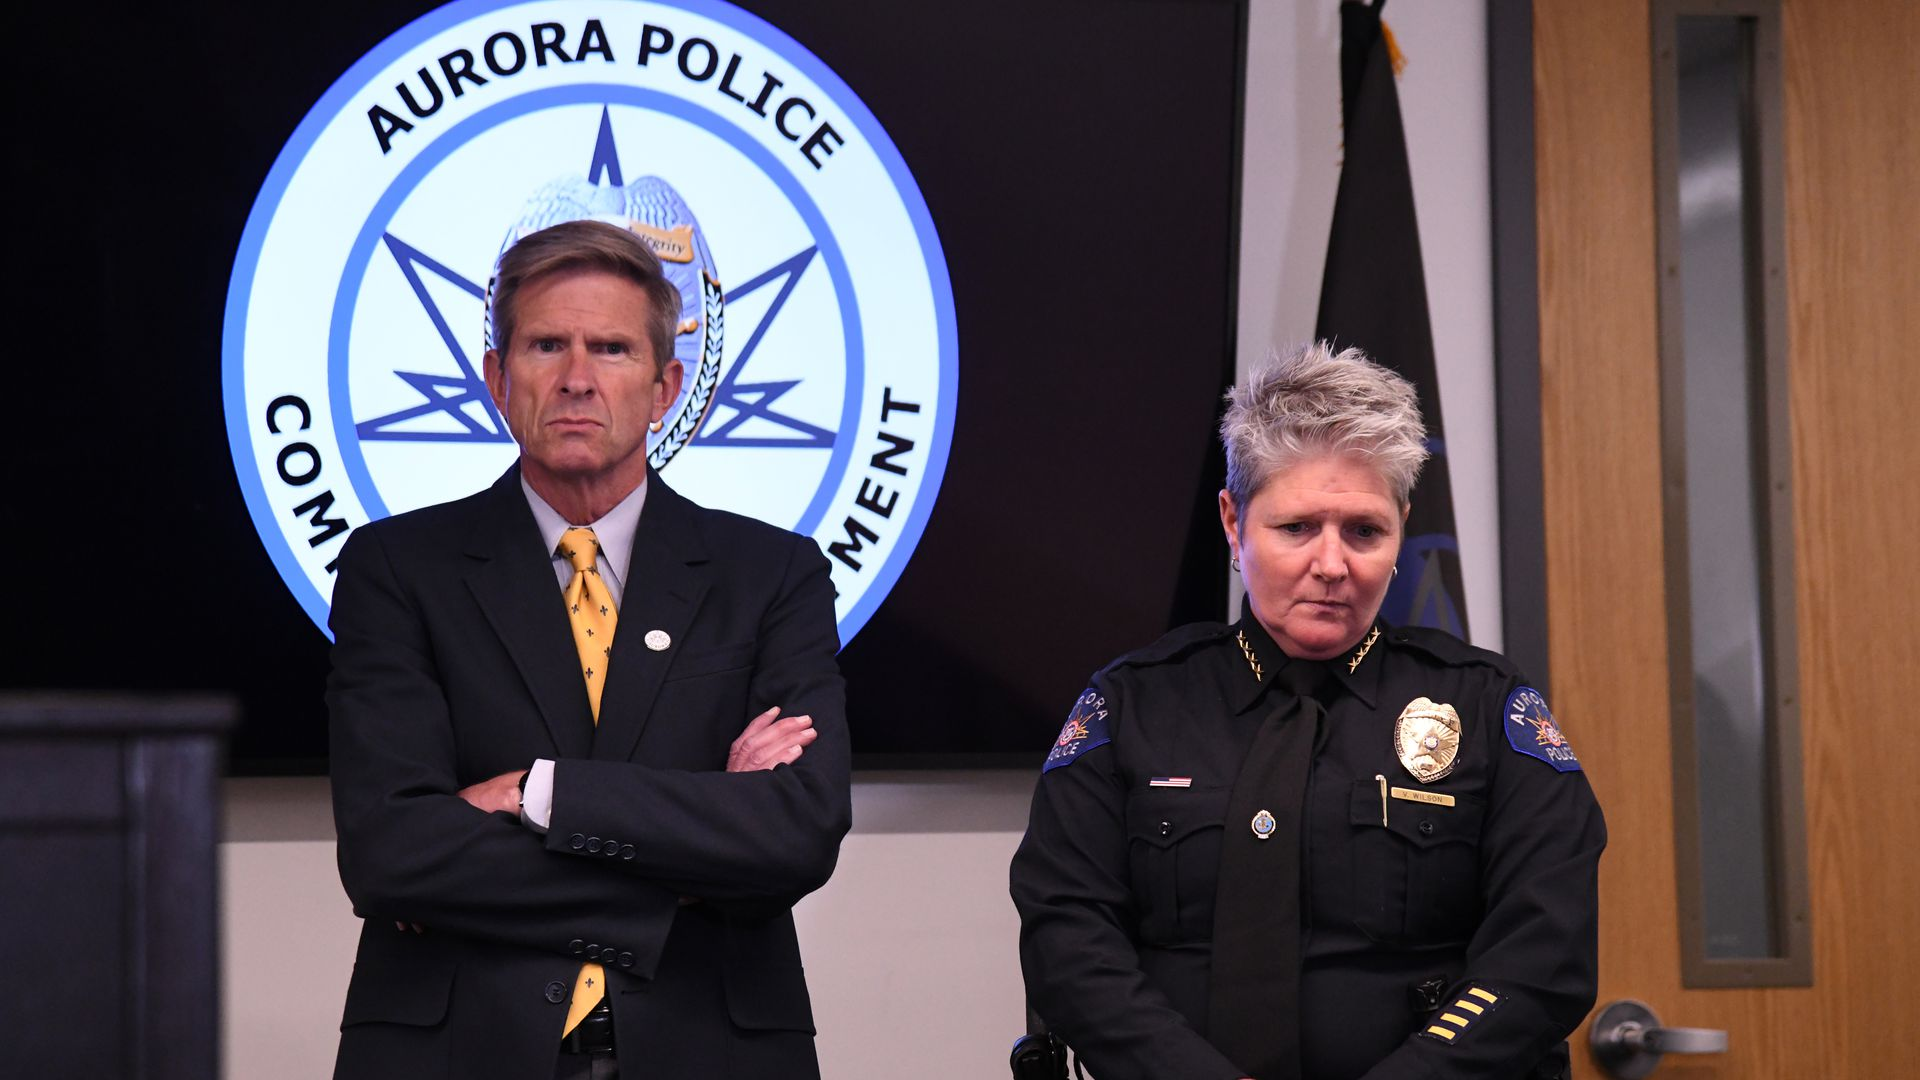 Aurora City Manager Jim Twombly, left, and Aurora Police Chief Vanessa Wilson face pressure amid new state investigation. Photo: Hyoung Chang/The Denver Post via Getty Images